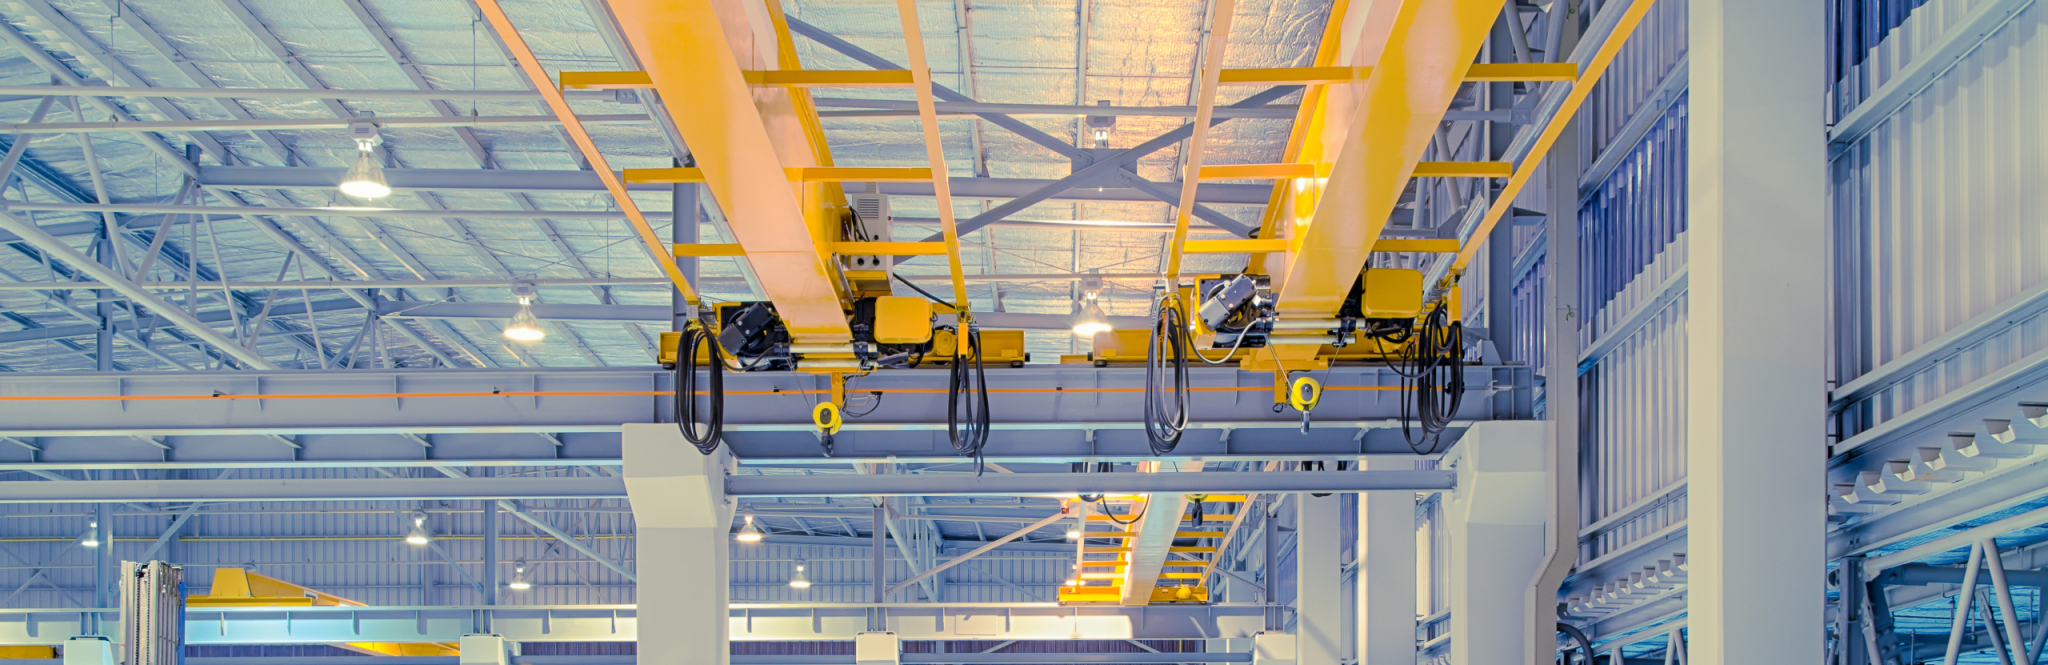 Overhead crane and concrete floor inside factory building for background.